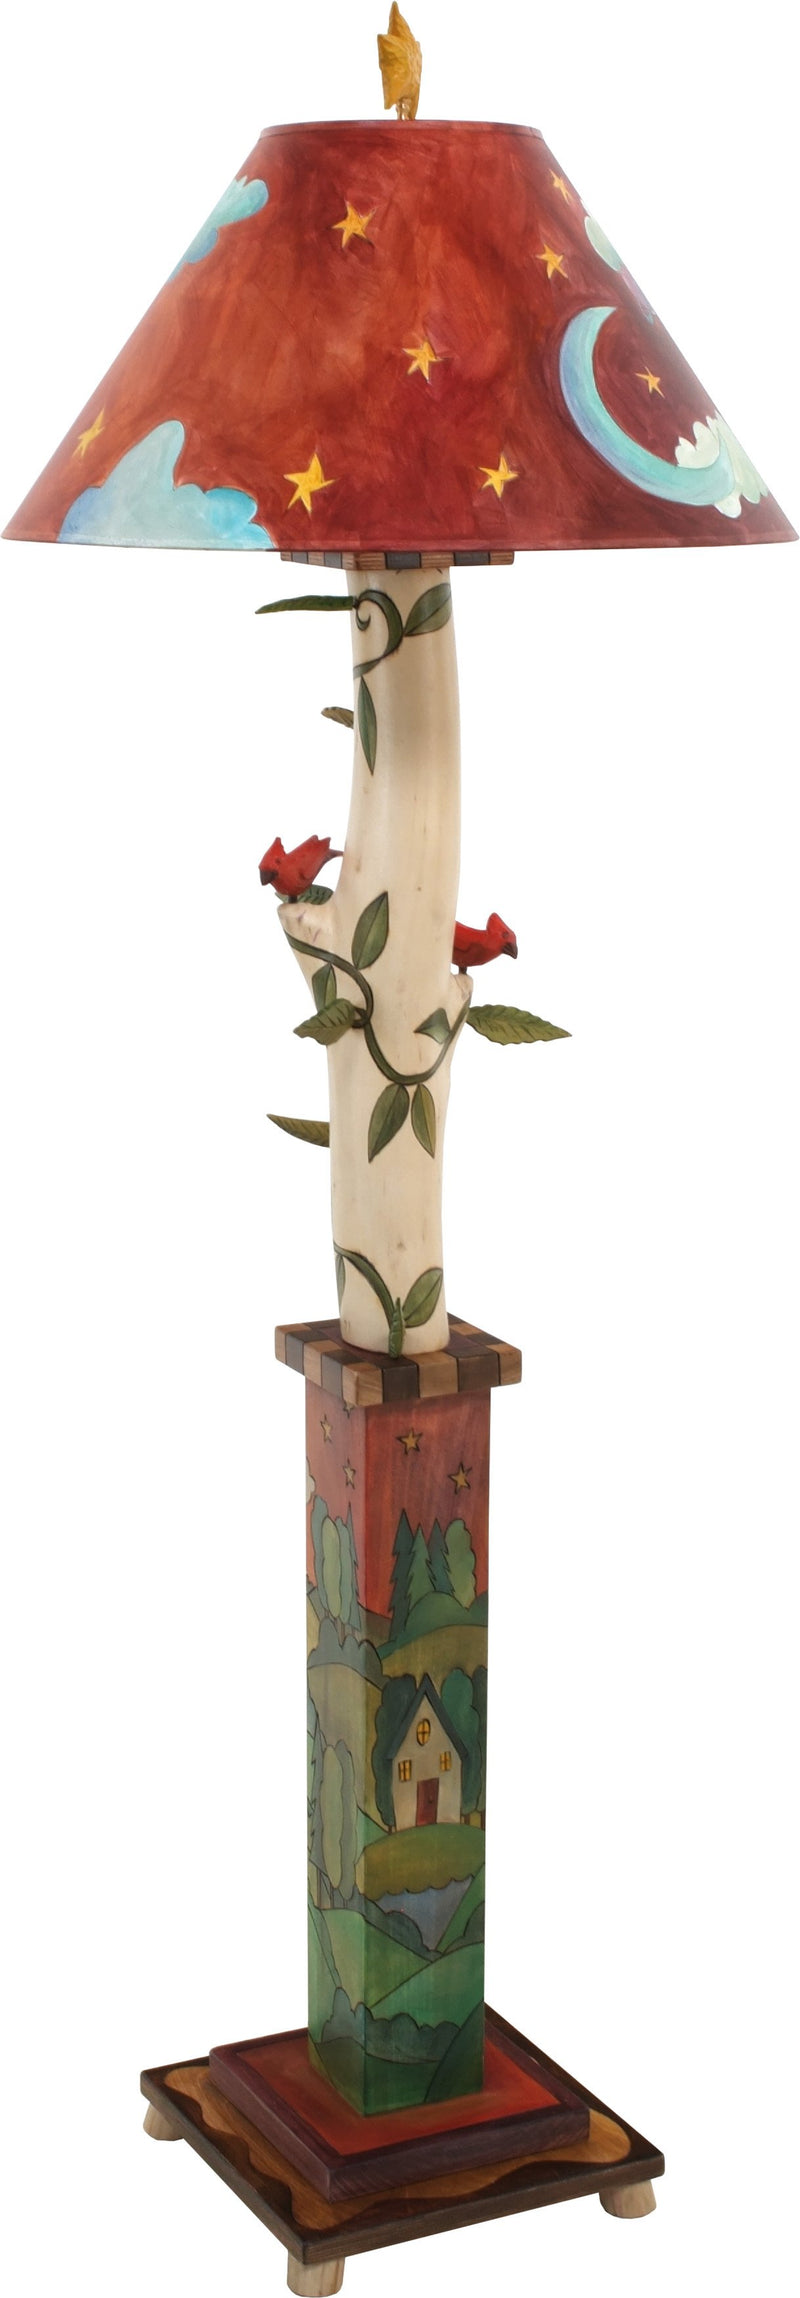 Box and Log Floor Lamp –  Creative folk art floor lamp with eclectic bird and leaf elements